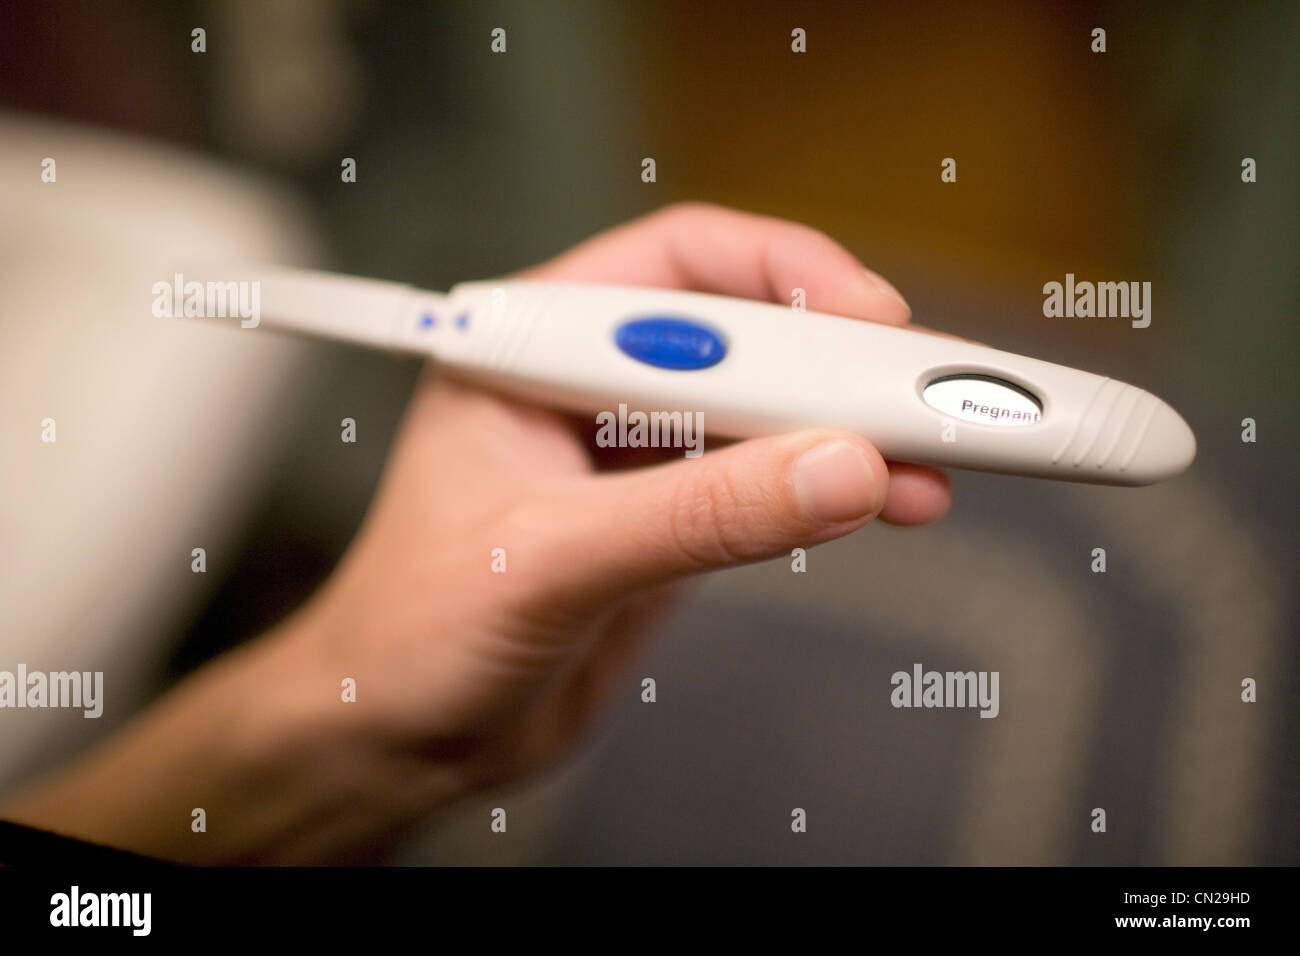 Woman holding pregnancy test - Stock Image